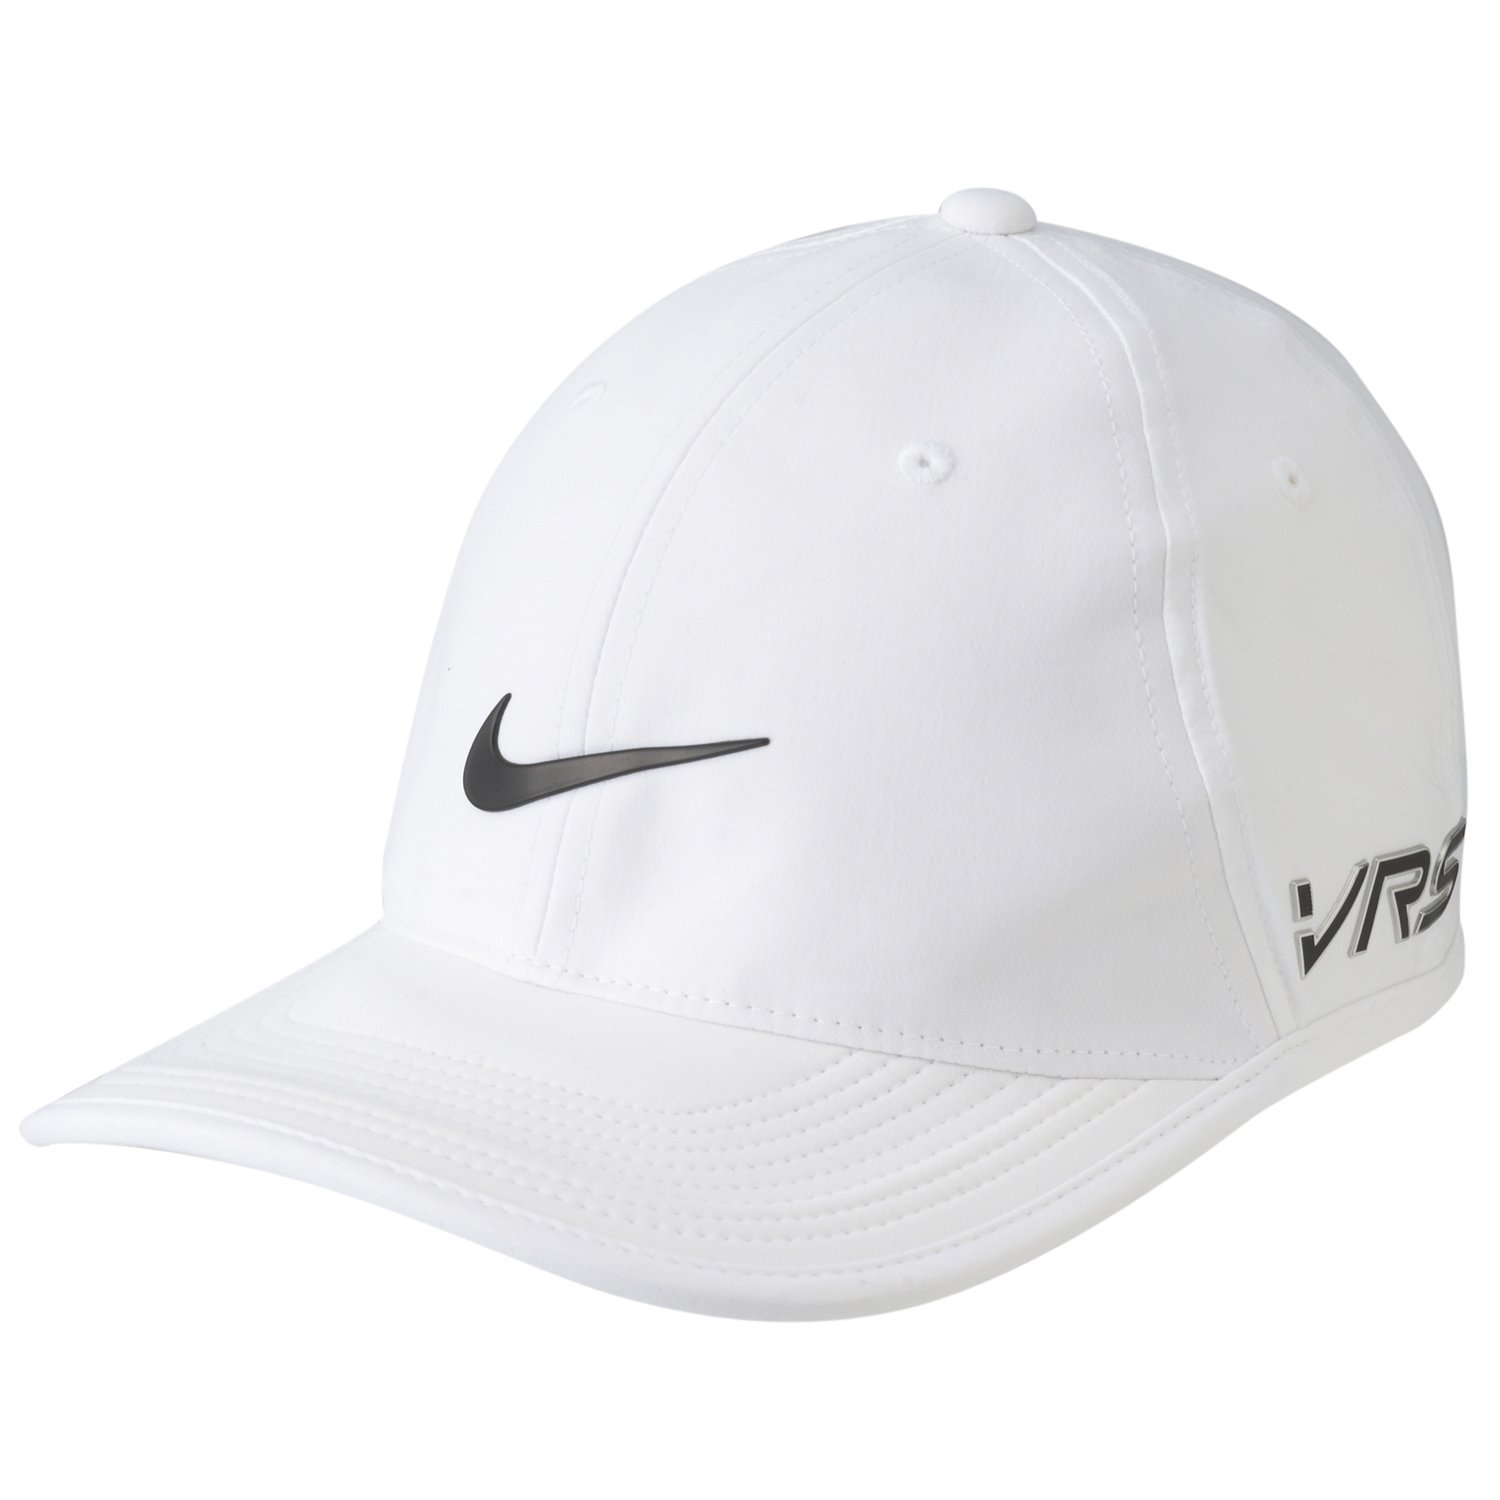 f4582ac91ee Buy Nike Golf 2014 Mens Ultralight Tour Legacy Adjustable Cap Golf ...